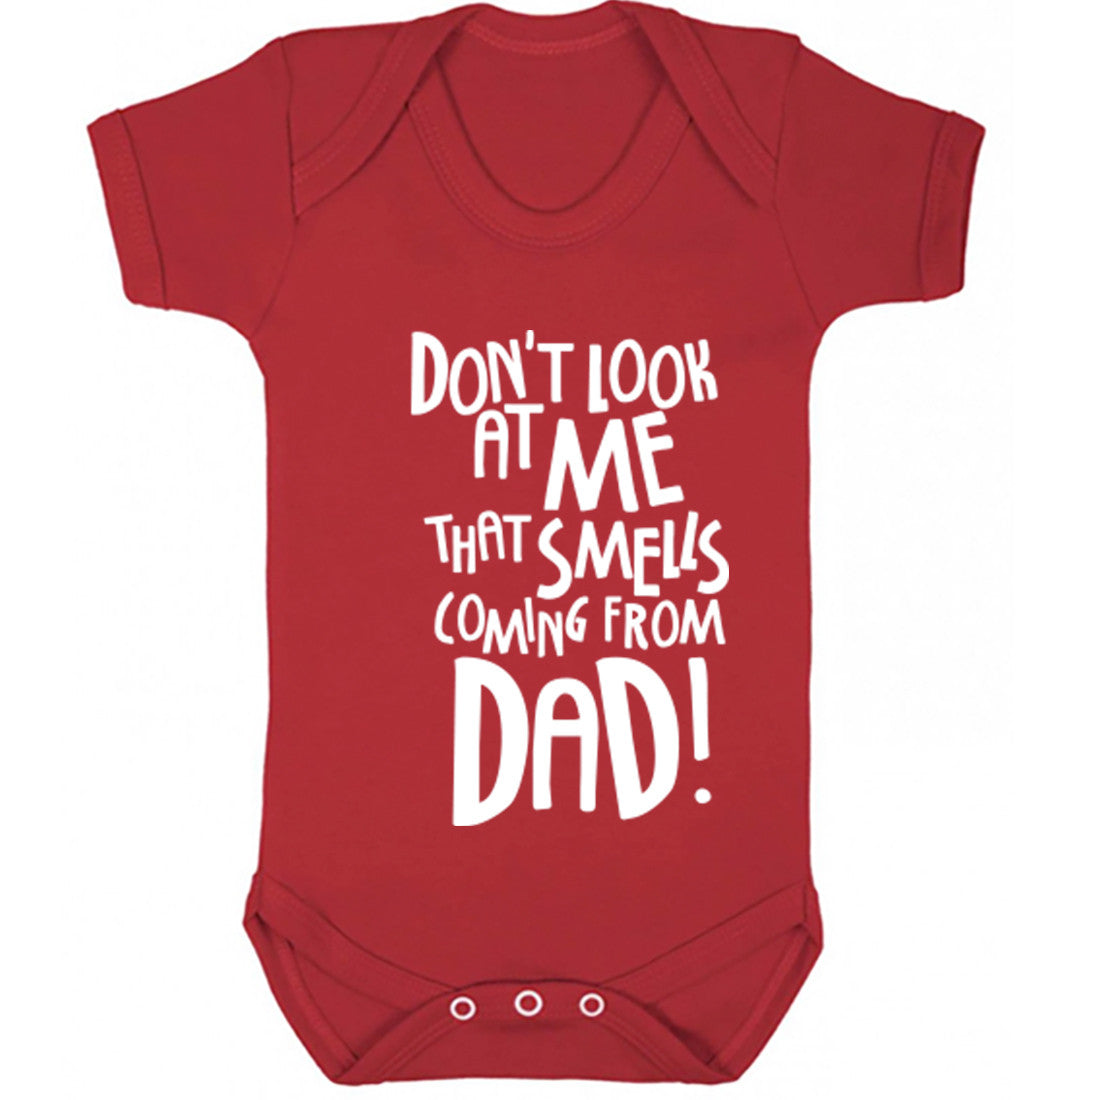 Don't Look At Me That Smell Is Coming From Dad Baby Vest K0366